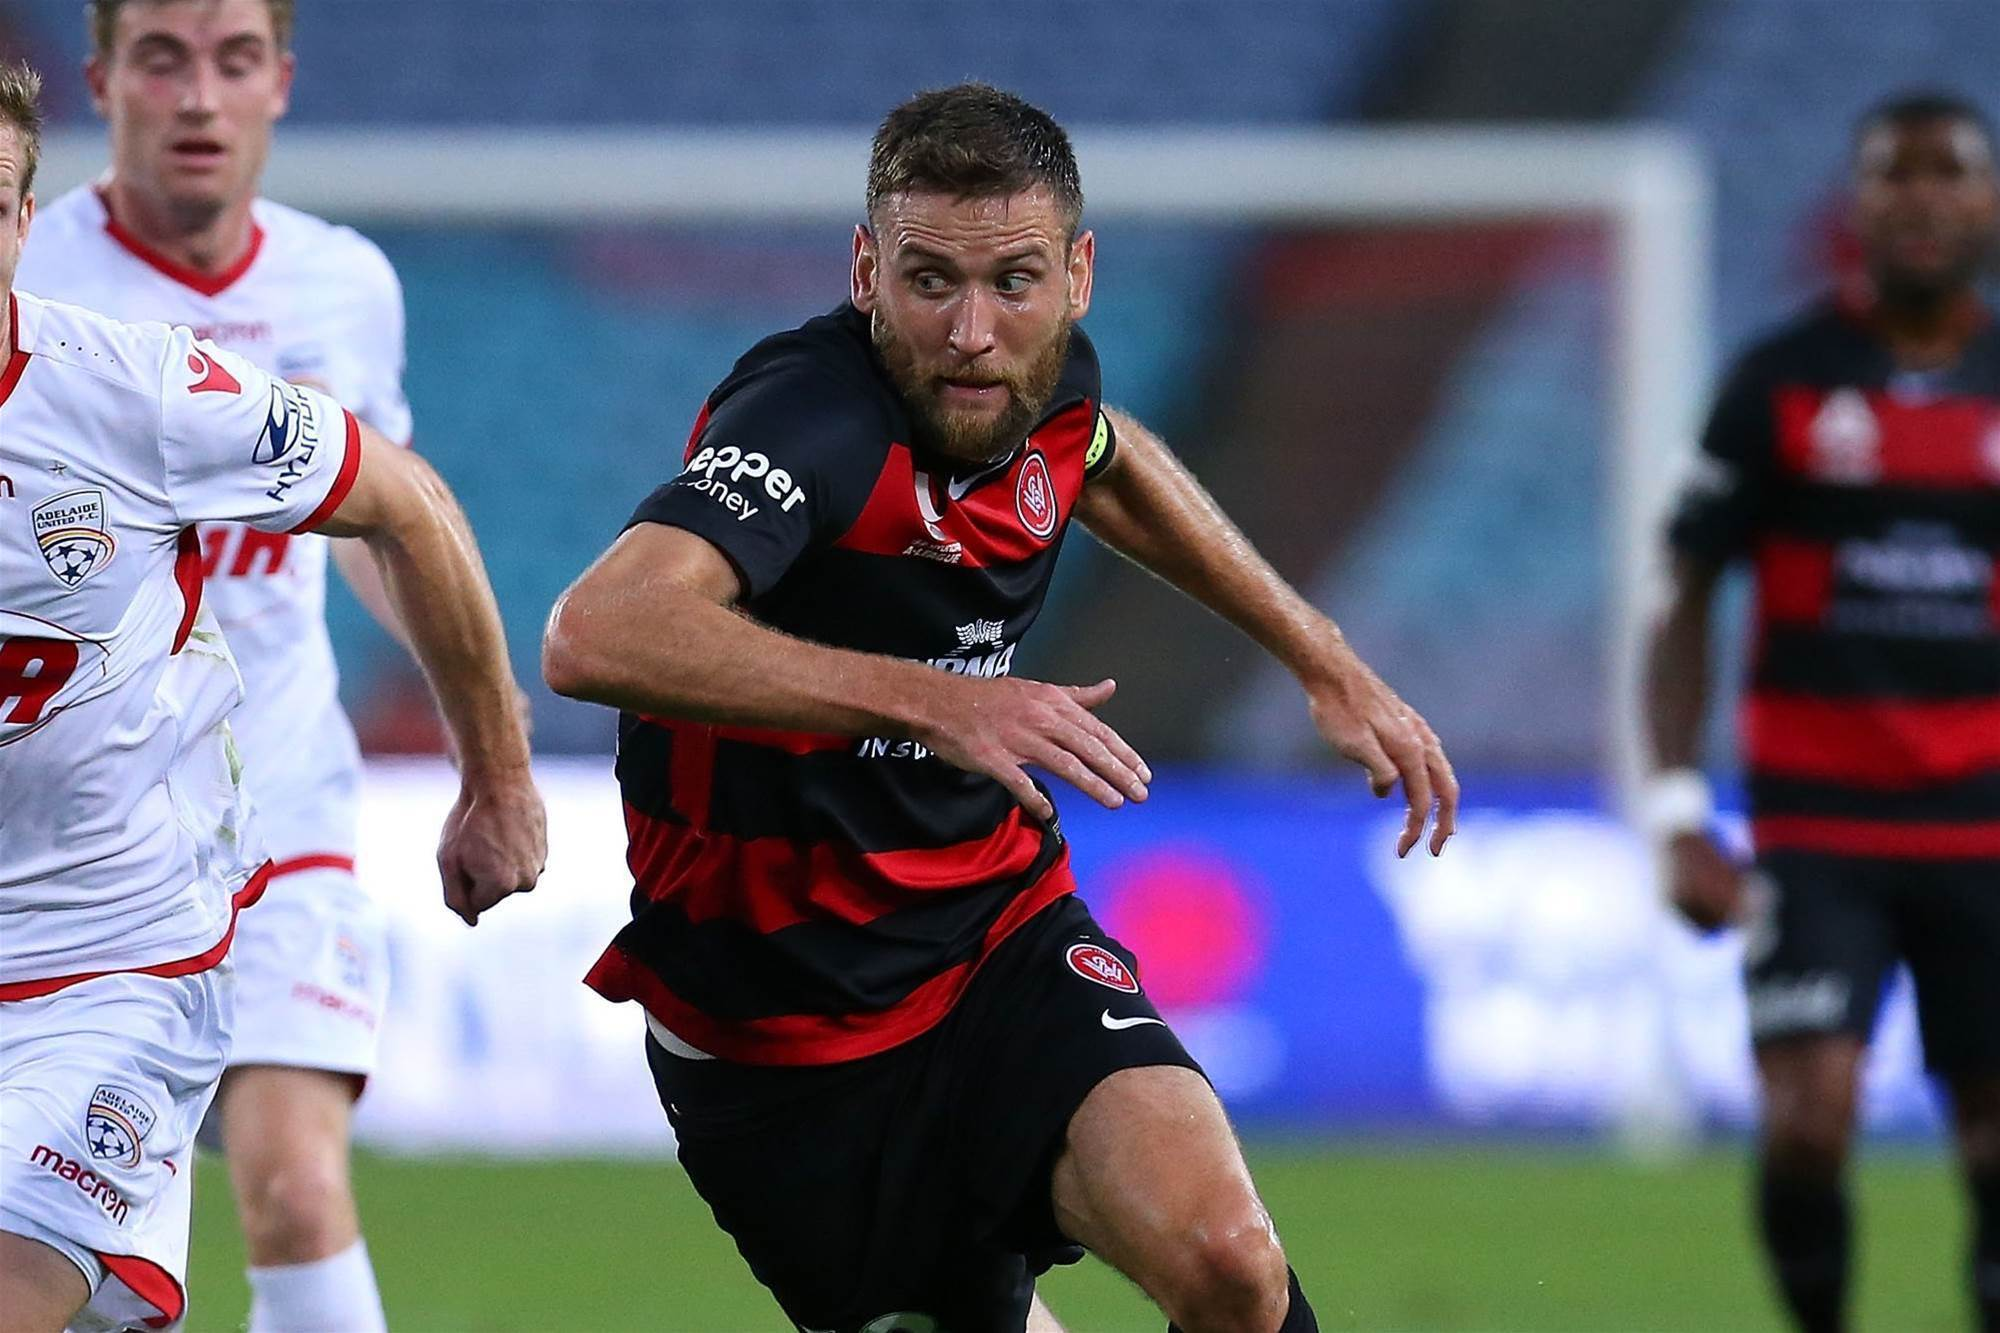 Cornthwaite released by Wanderers